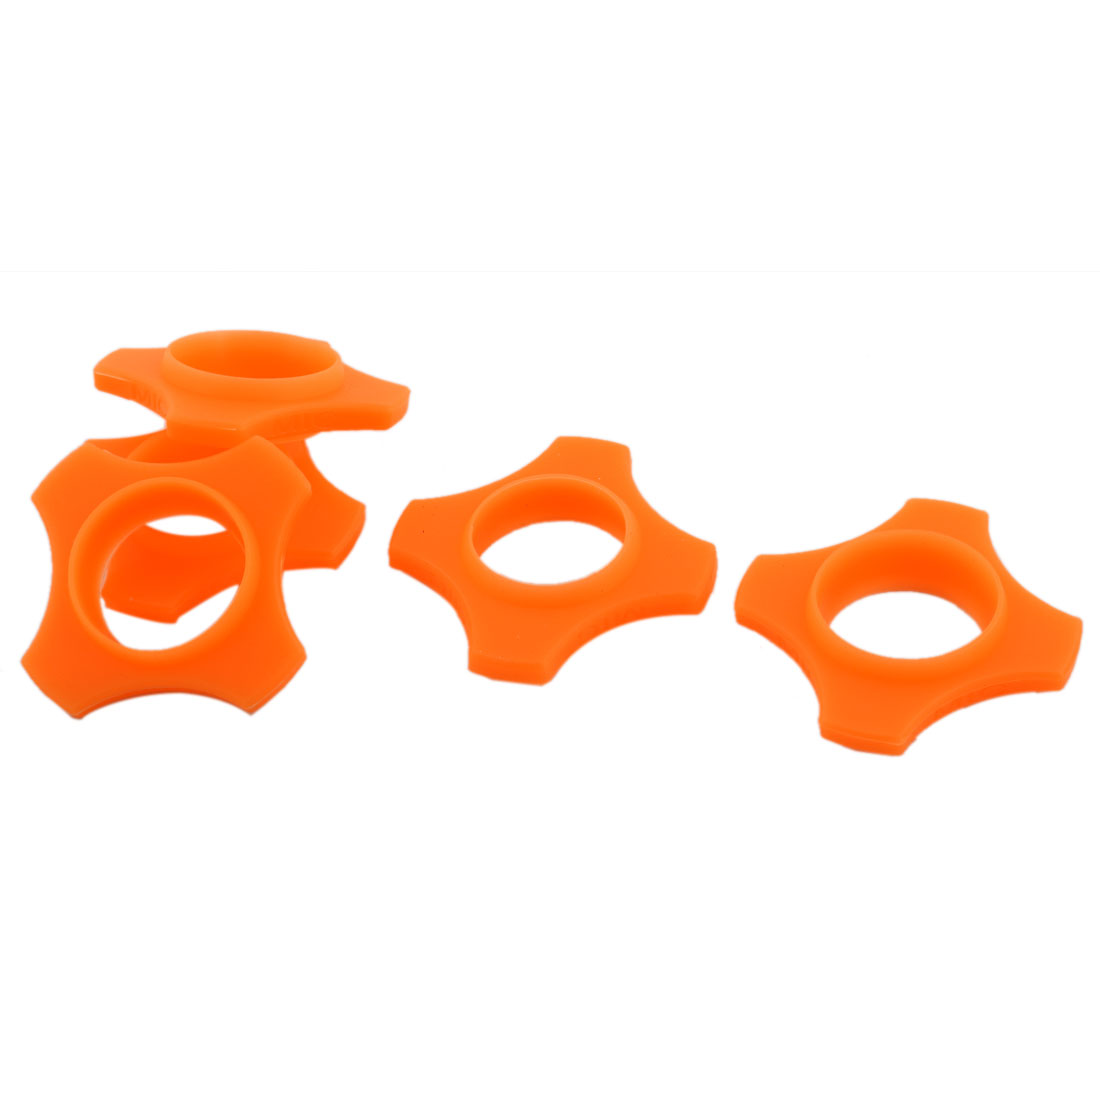 Wireless Handheld Microphone Anti Roll Mic Protection Silicone Ring Orange 5 PCS